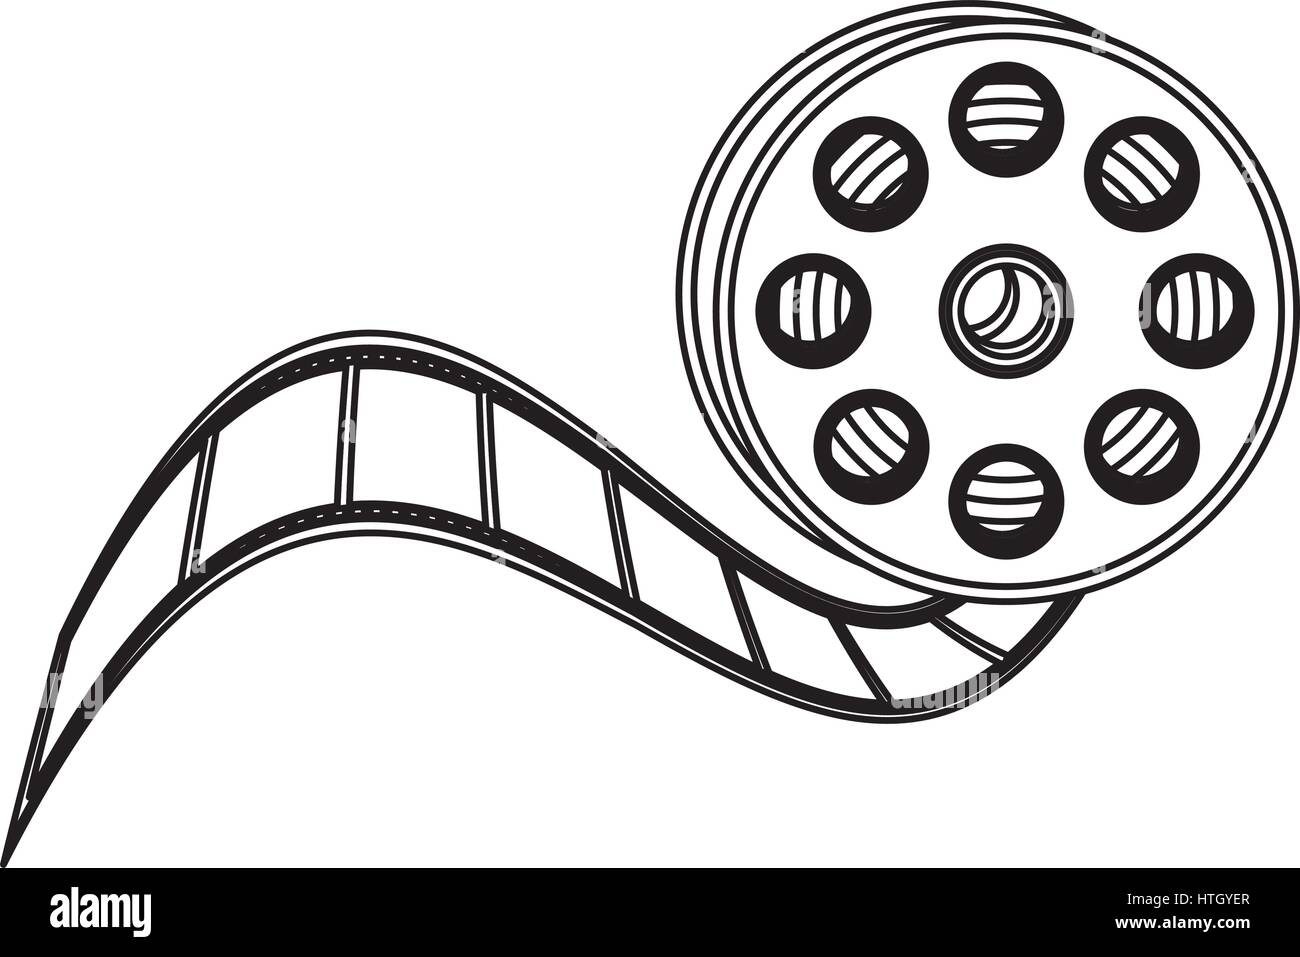 movie film clipart icon stock vector art illustration vector rh alamy com movie film strip clipart movie film roll clip art